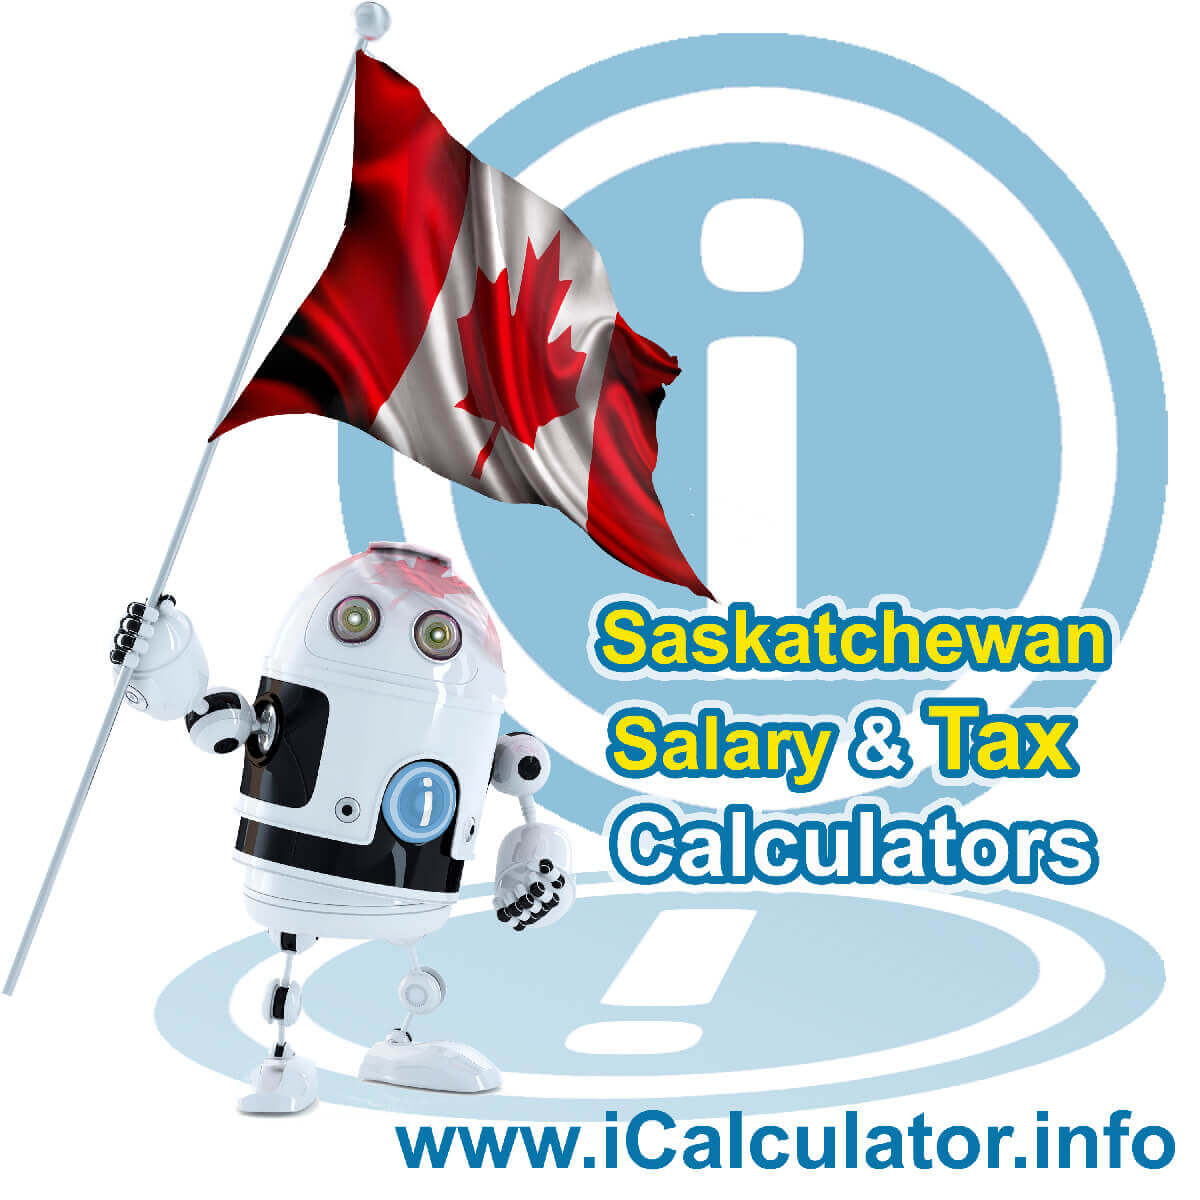 Saskatchewan 2020 Salary Comparison Calculator. This image shows the Saskatchewan flag and information relating to the tax formula used in the Saskatchewan 2020 Salary Comparison Calculator